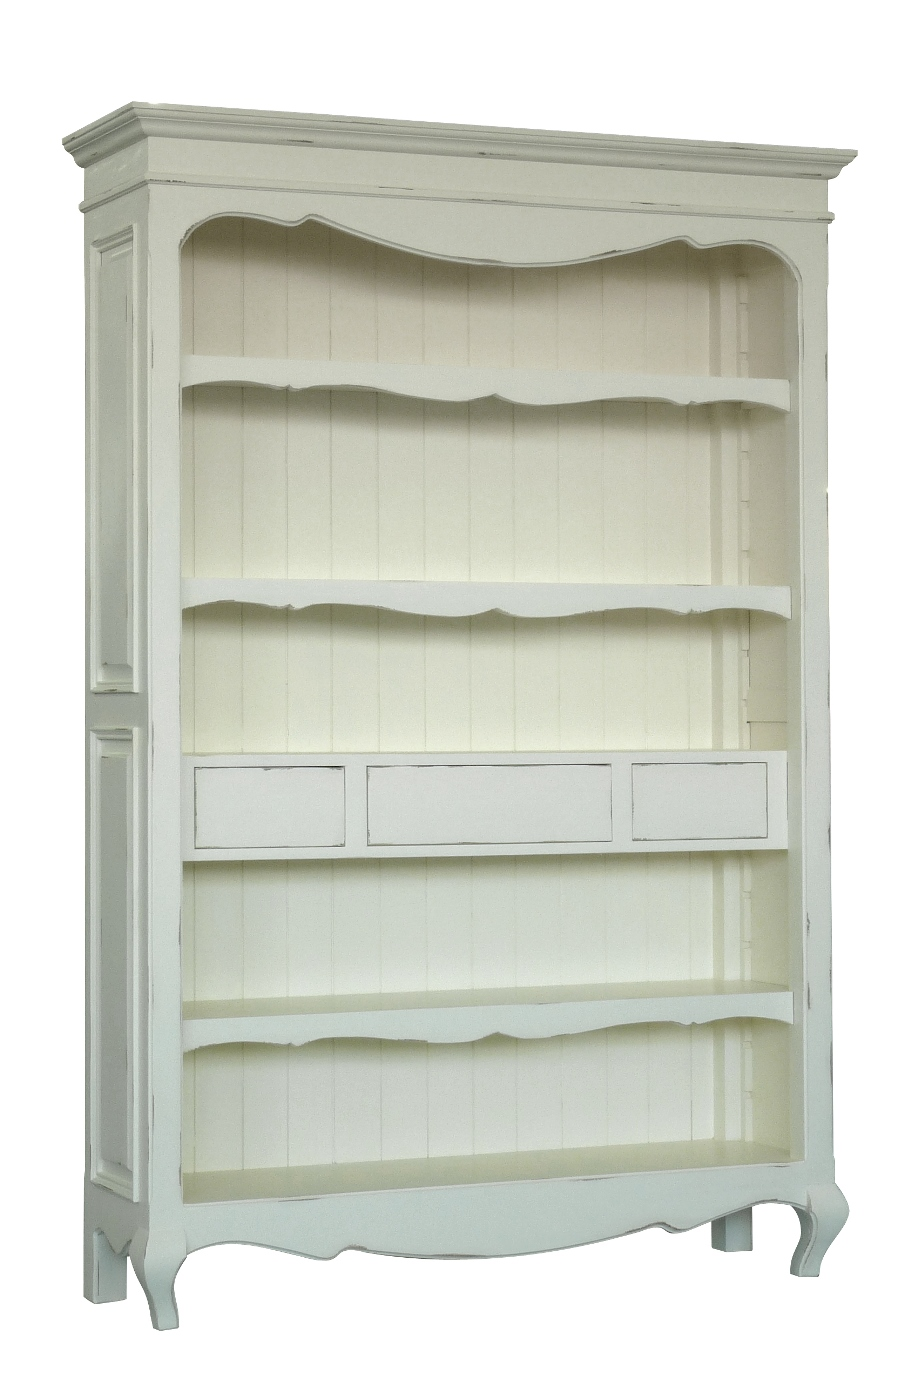 HERITAGE FRENCH LINE BOOKCASE  w 138 x d 41 x h 205 cm  € 1,681 ( 30% Off- NOW € 1176.70 )  Product Code: FL-7020  This piece may be orderedin any of the Heritage colours and finishes.